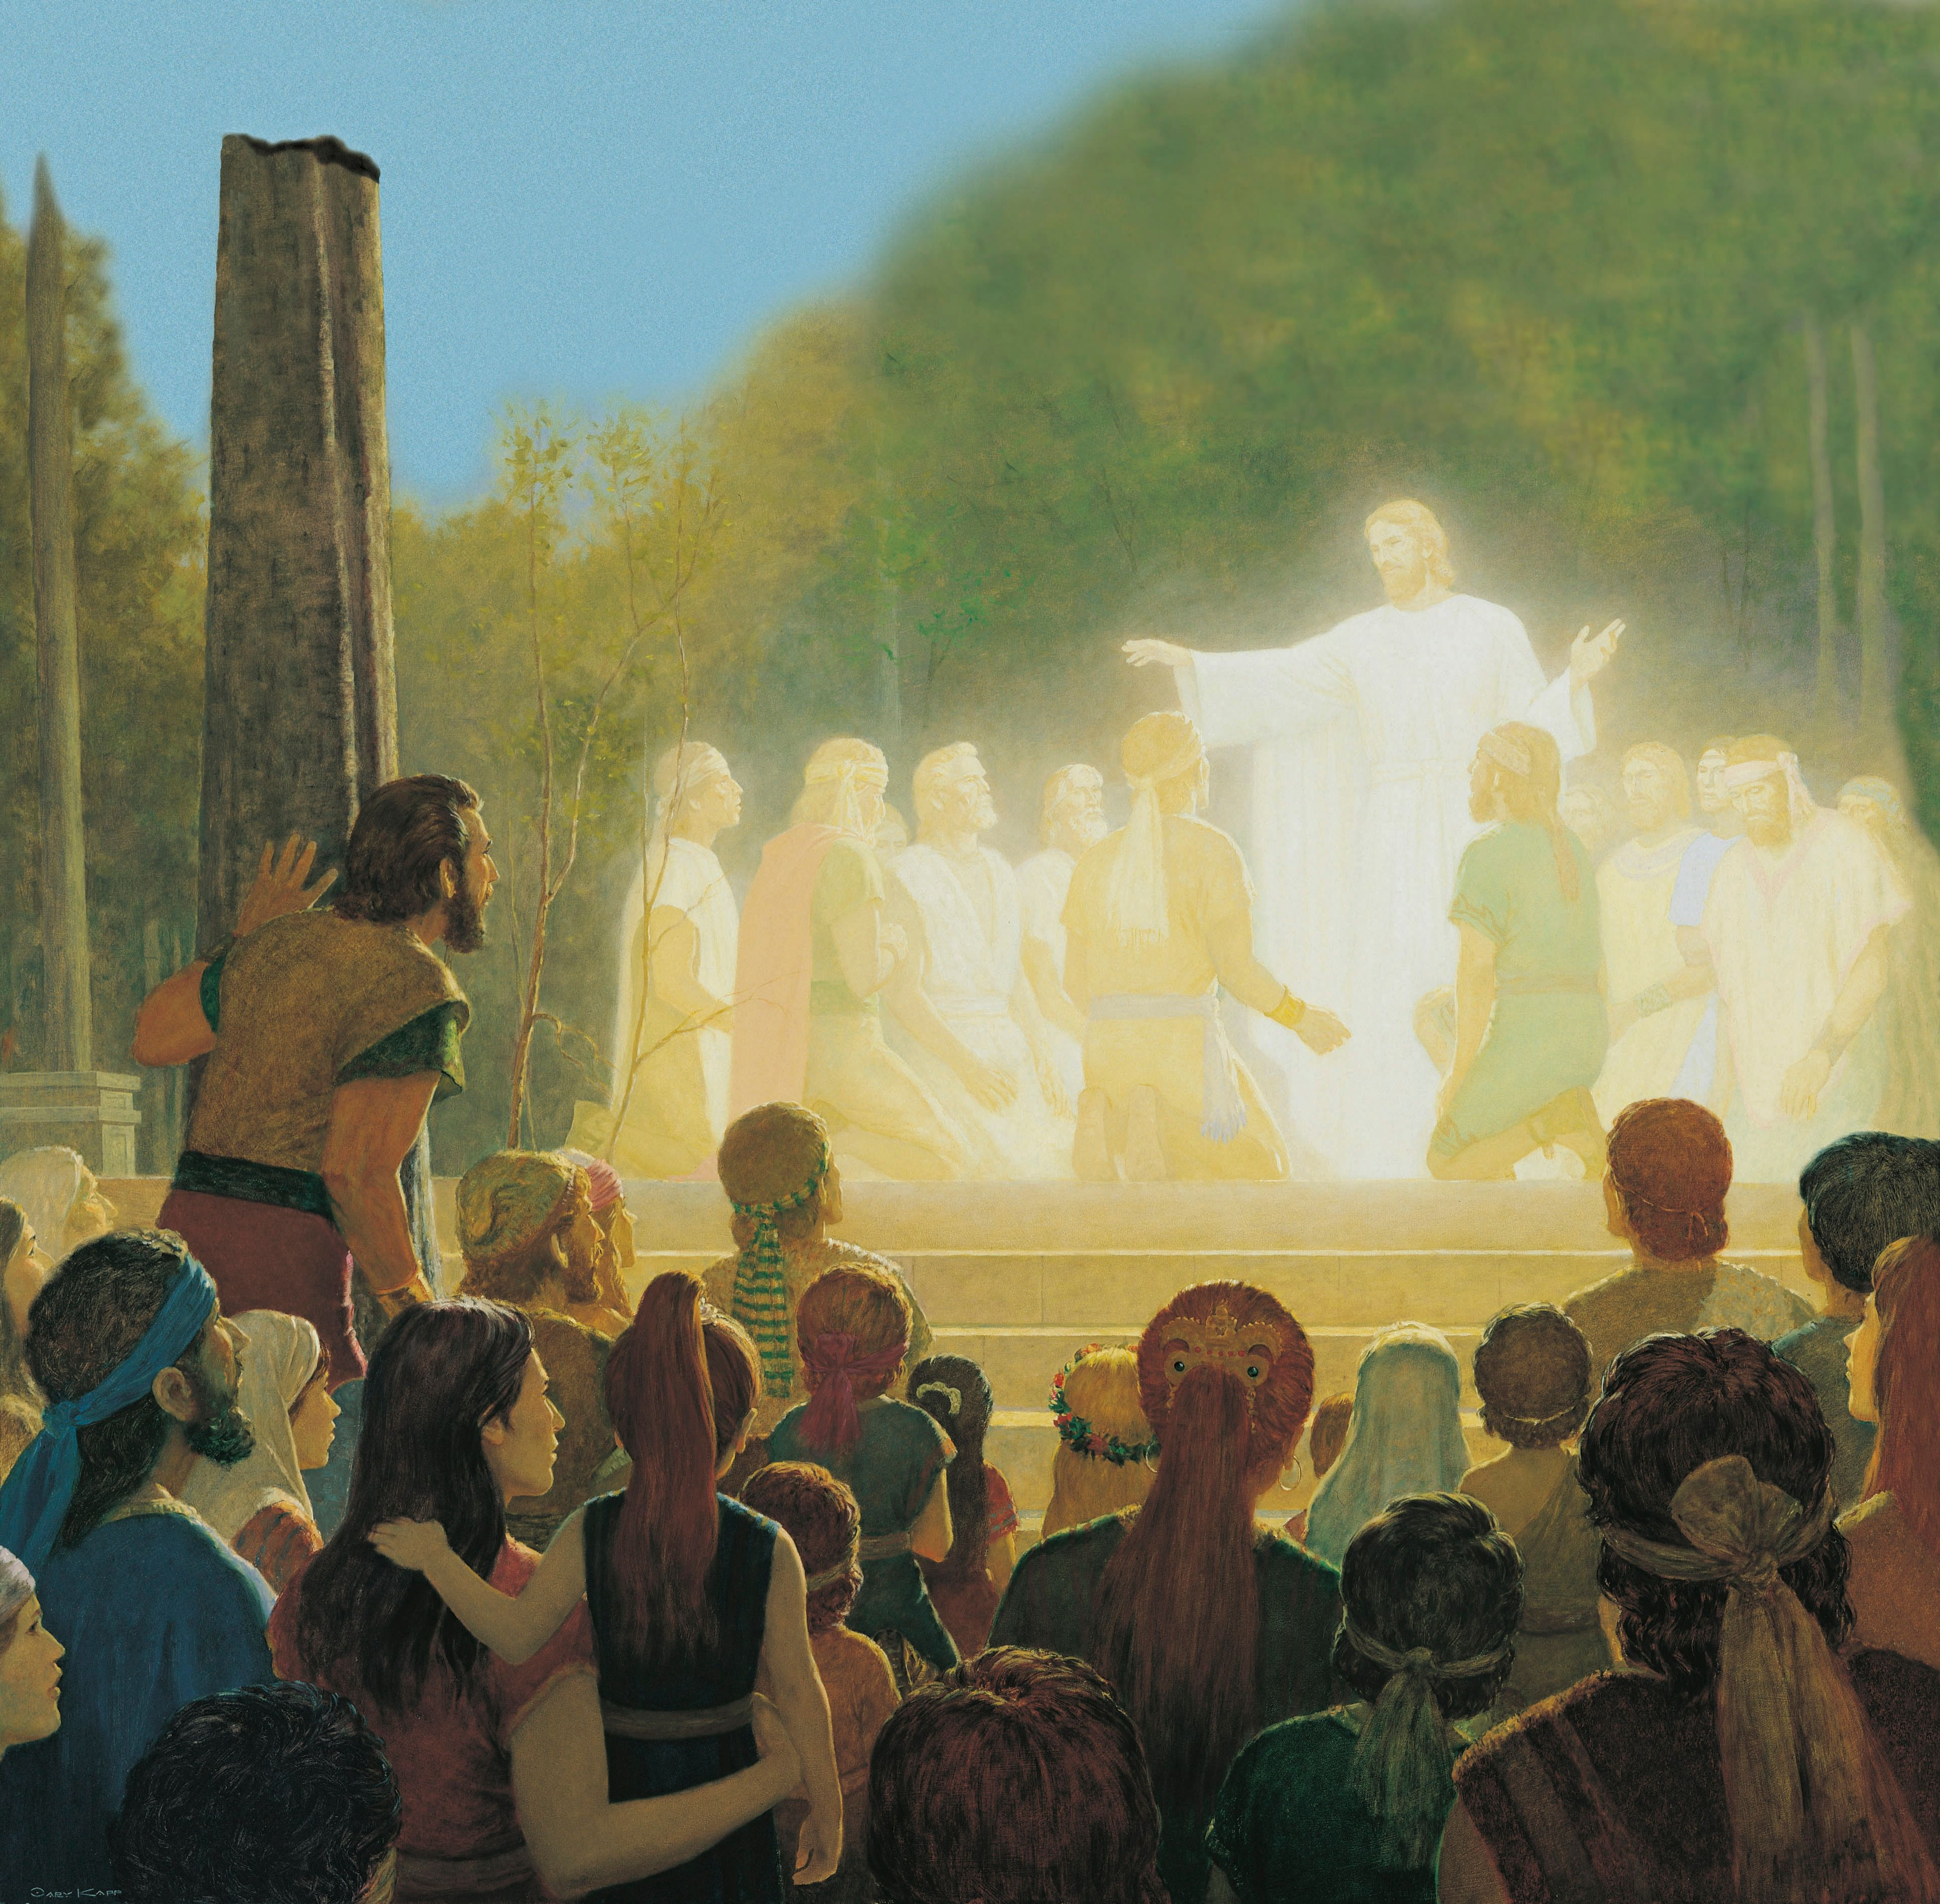 The Light of His Countenance Did Shine upon Them, by Gary L. Kapp